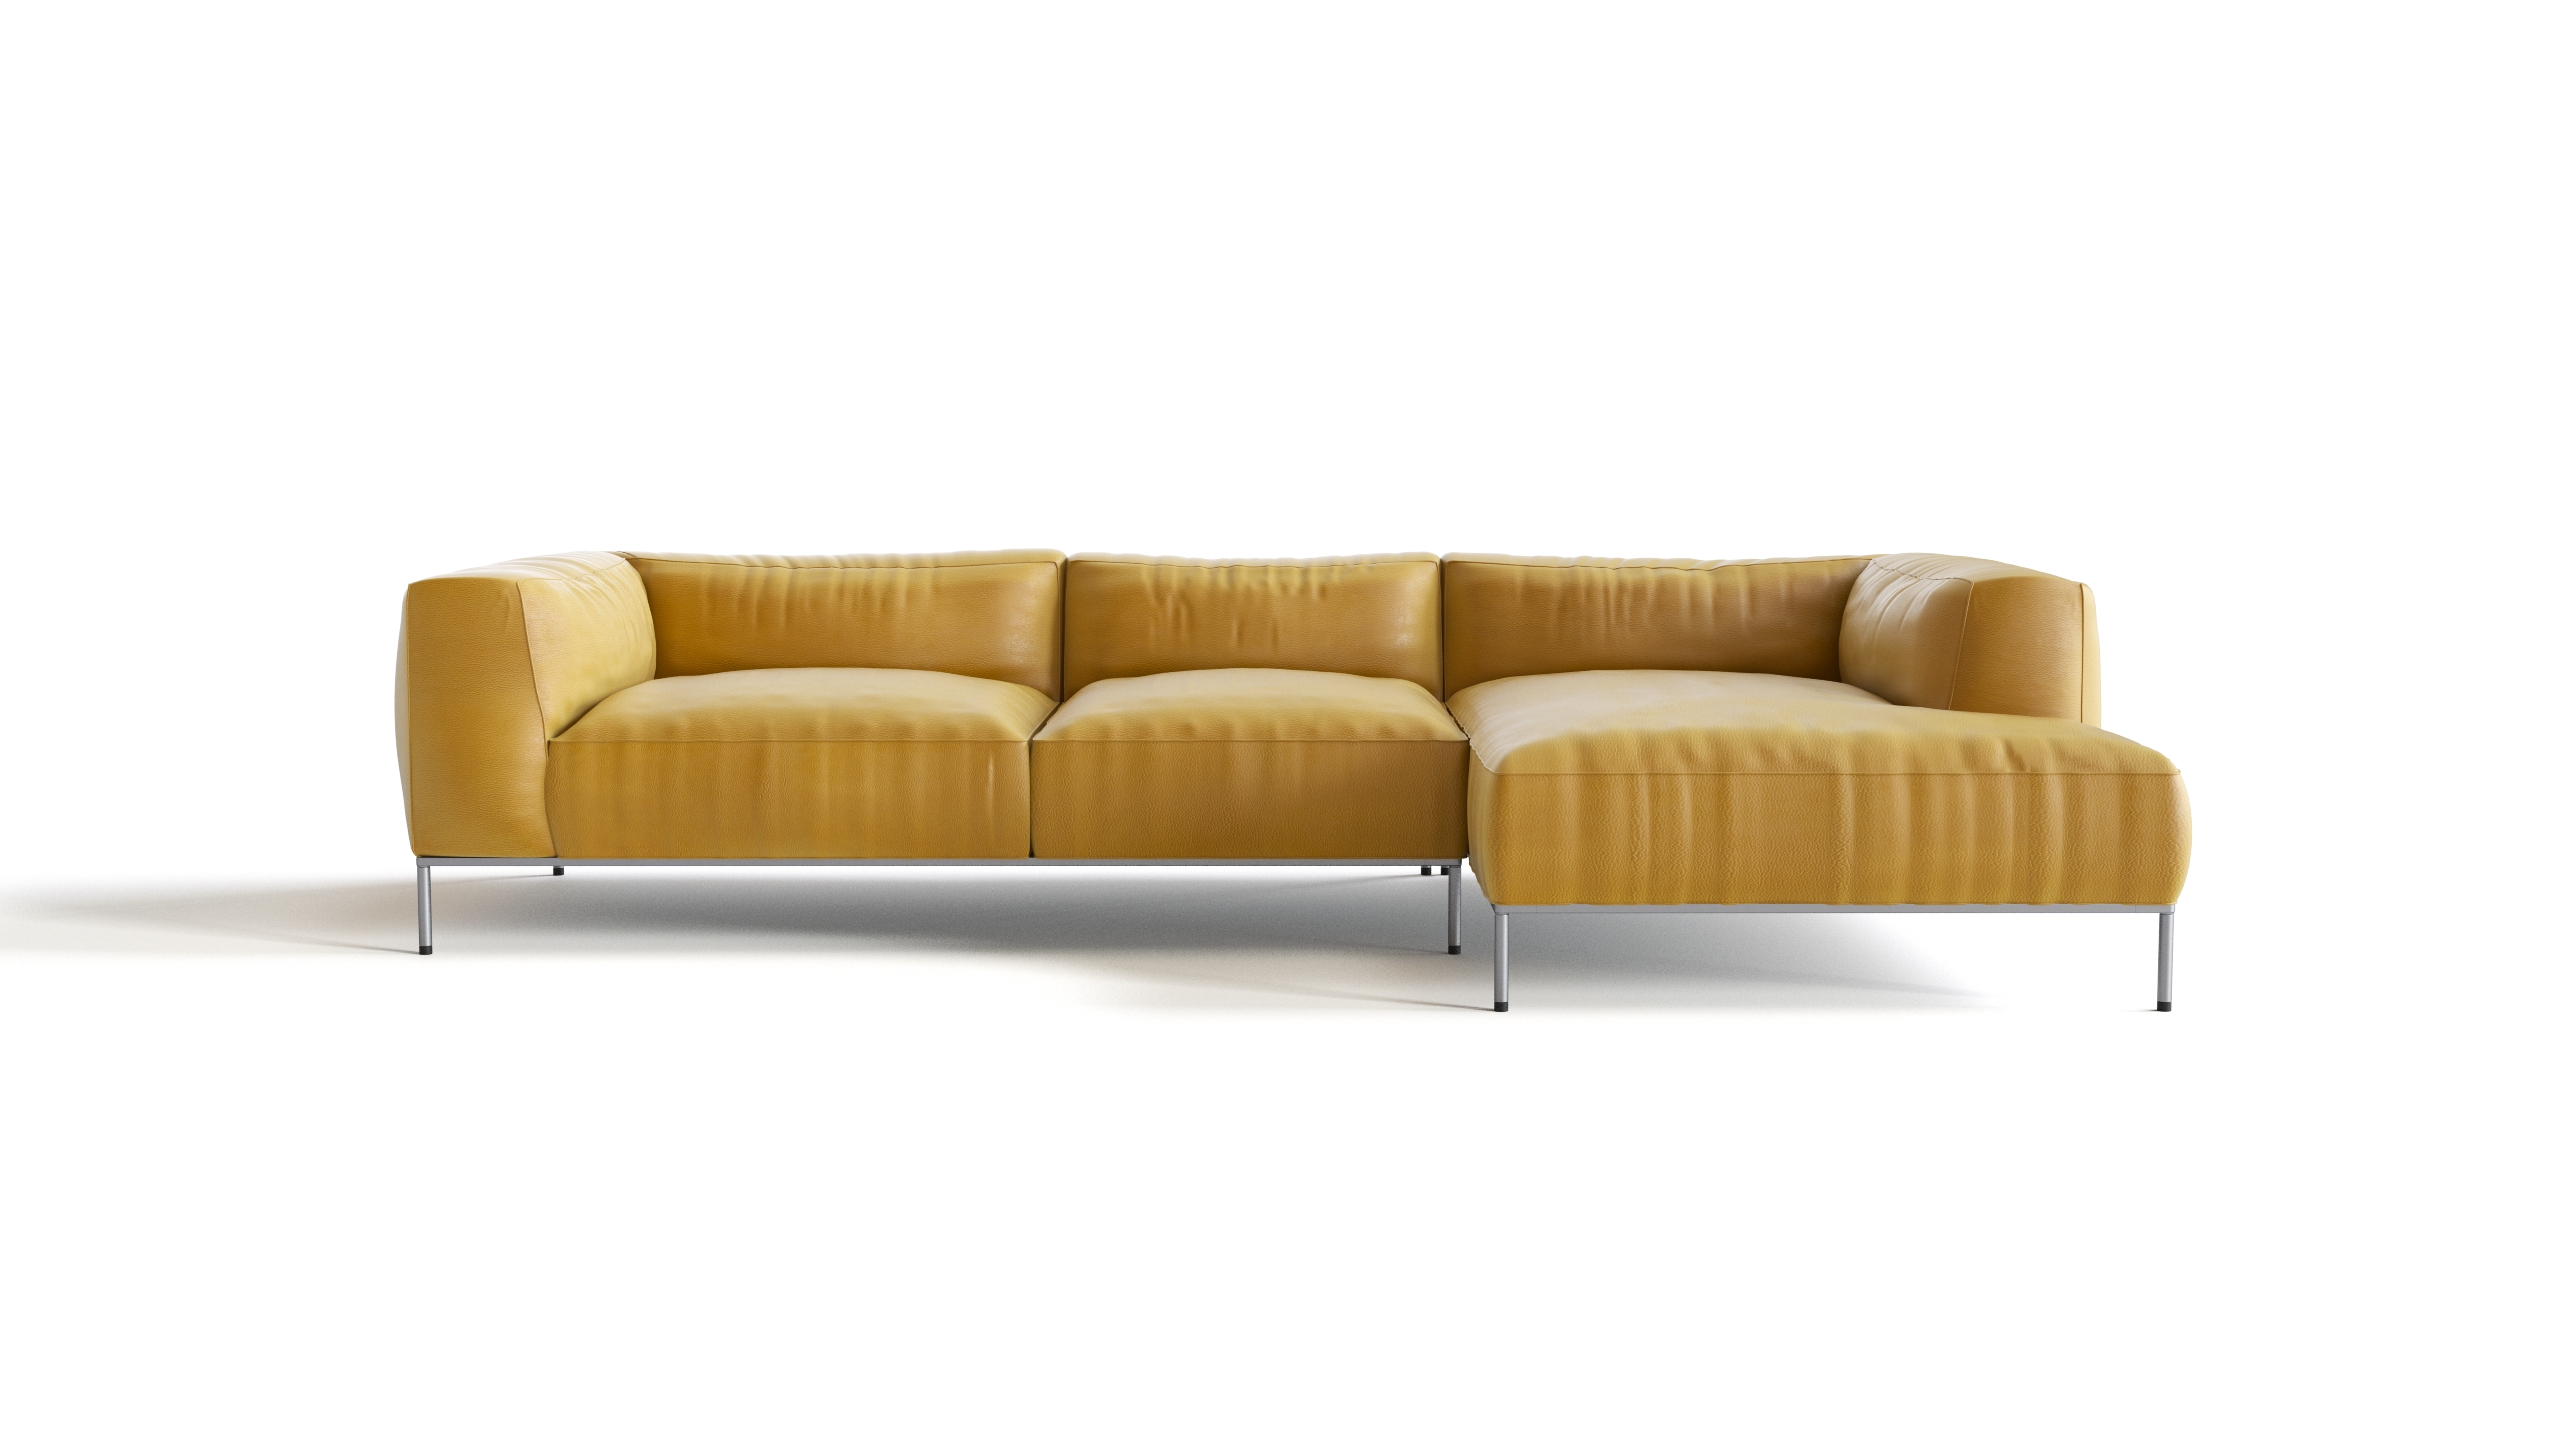 Yellow leather sofa flyingarchitecture for Yellow leather sofa bed